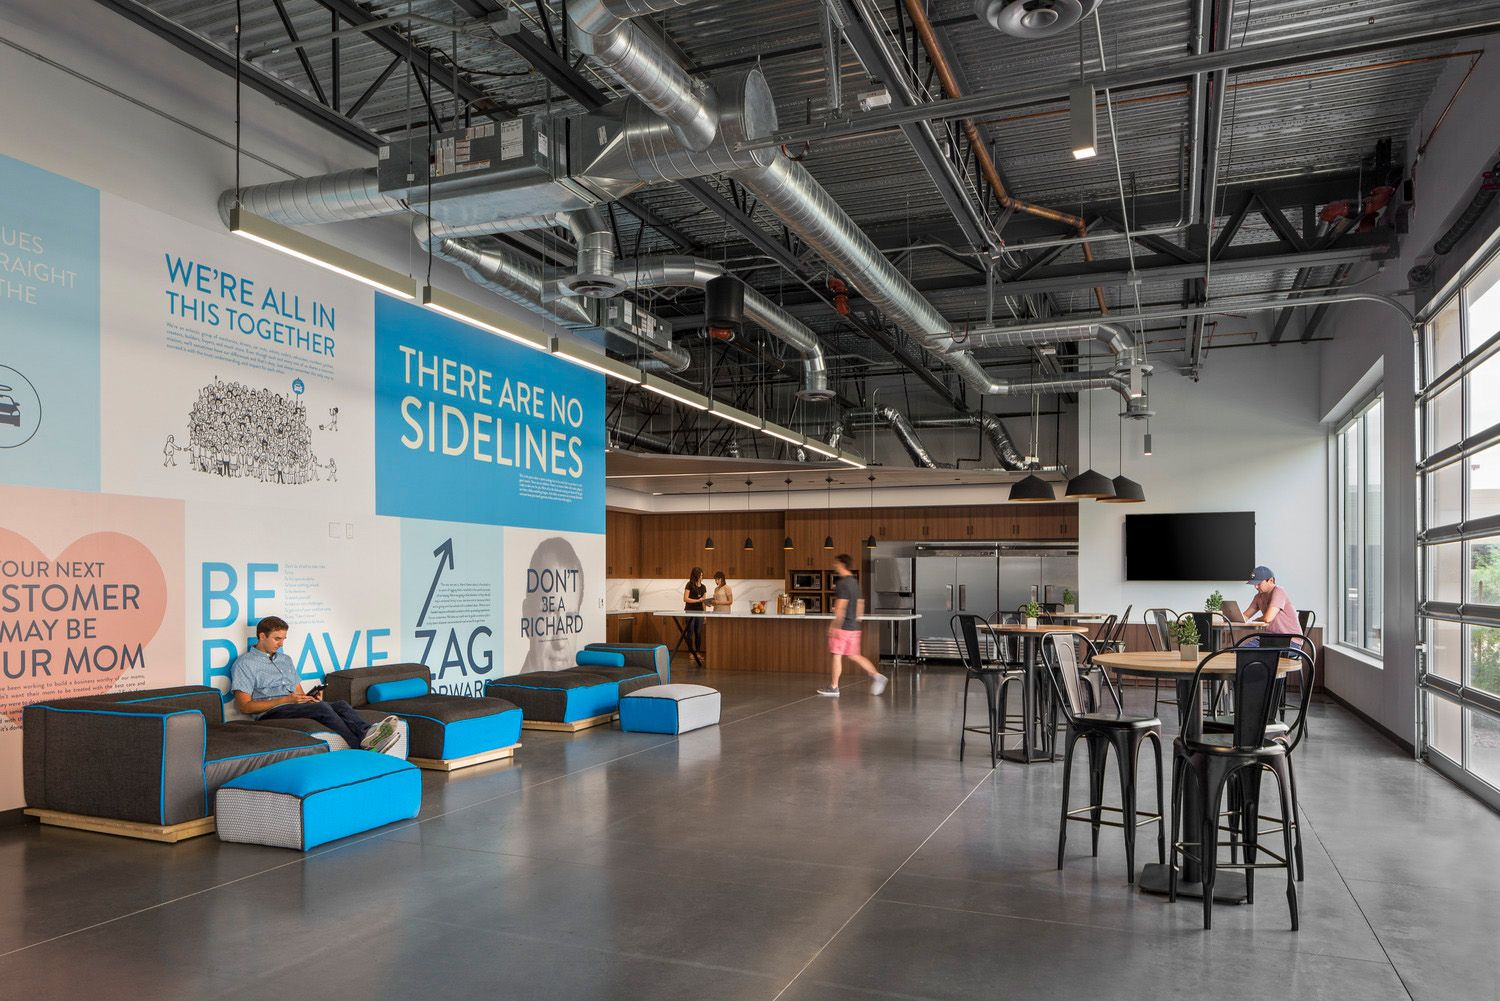 Office Tour Carvana Offices Tempe Small Luxury Cars Used